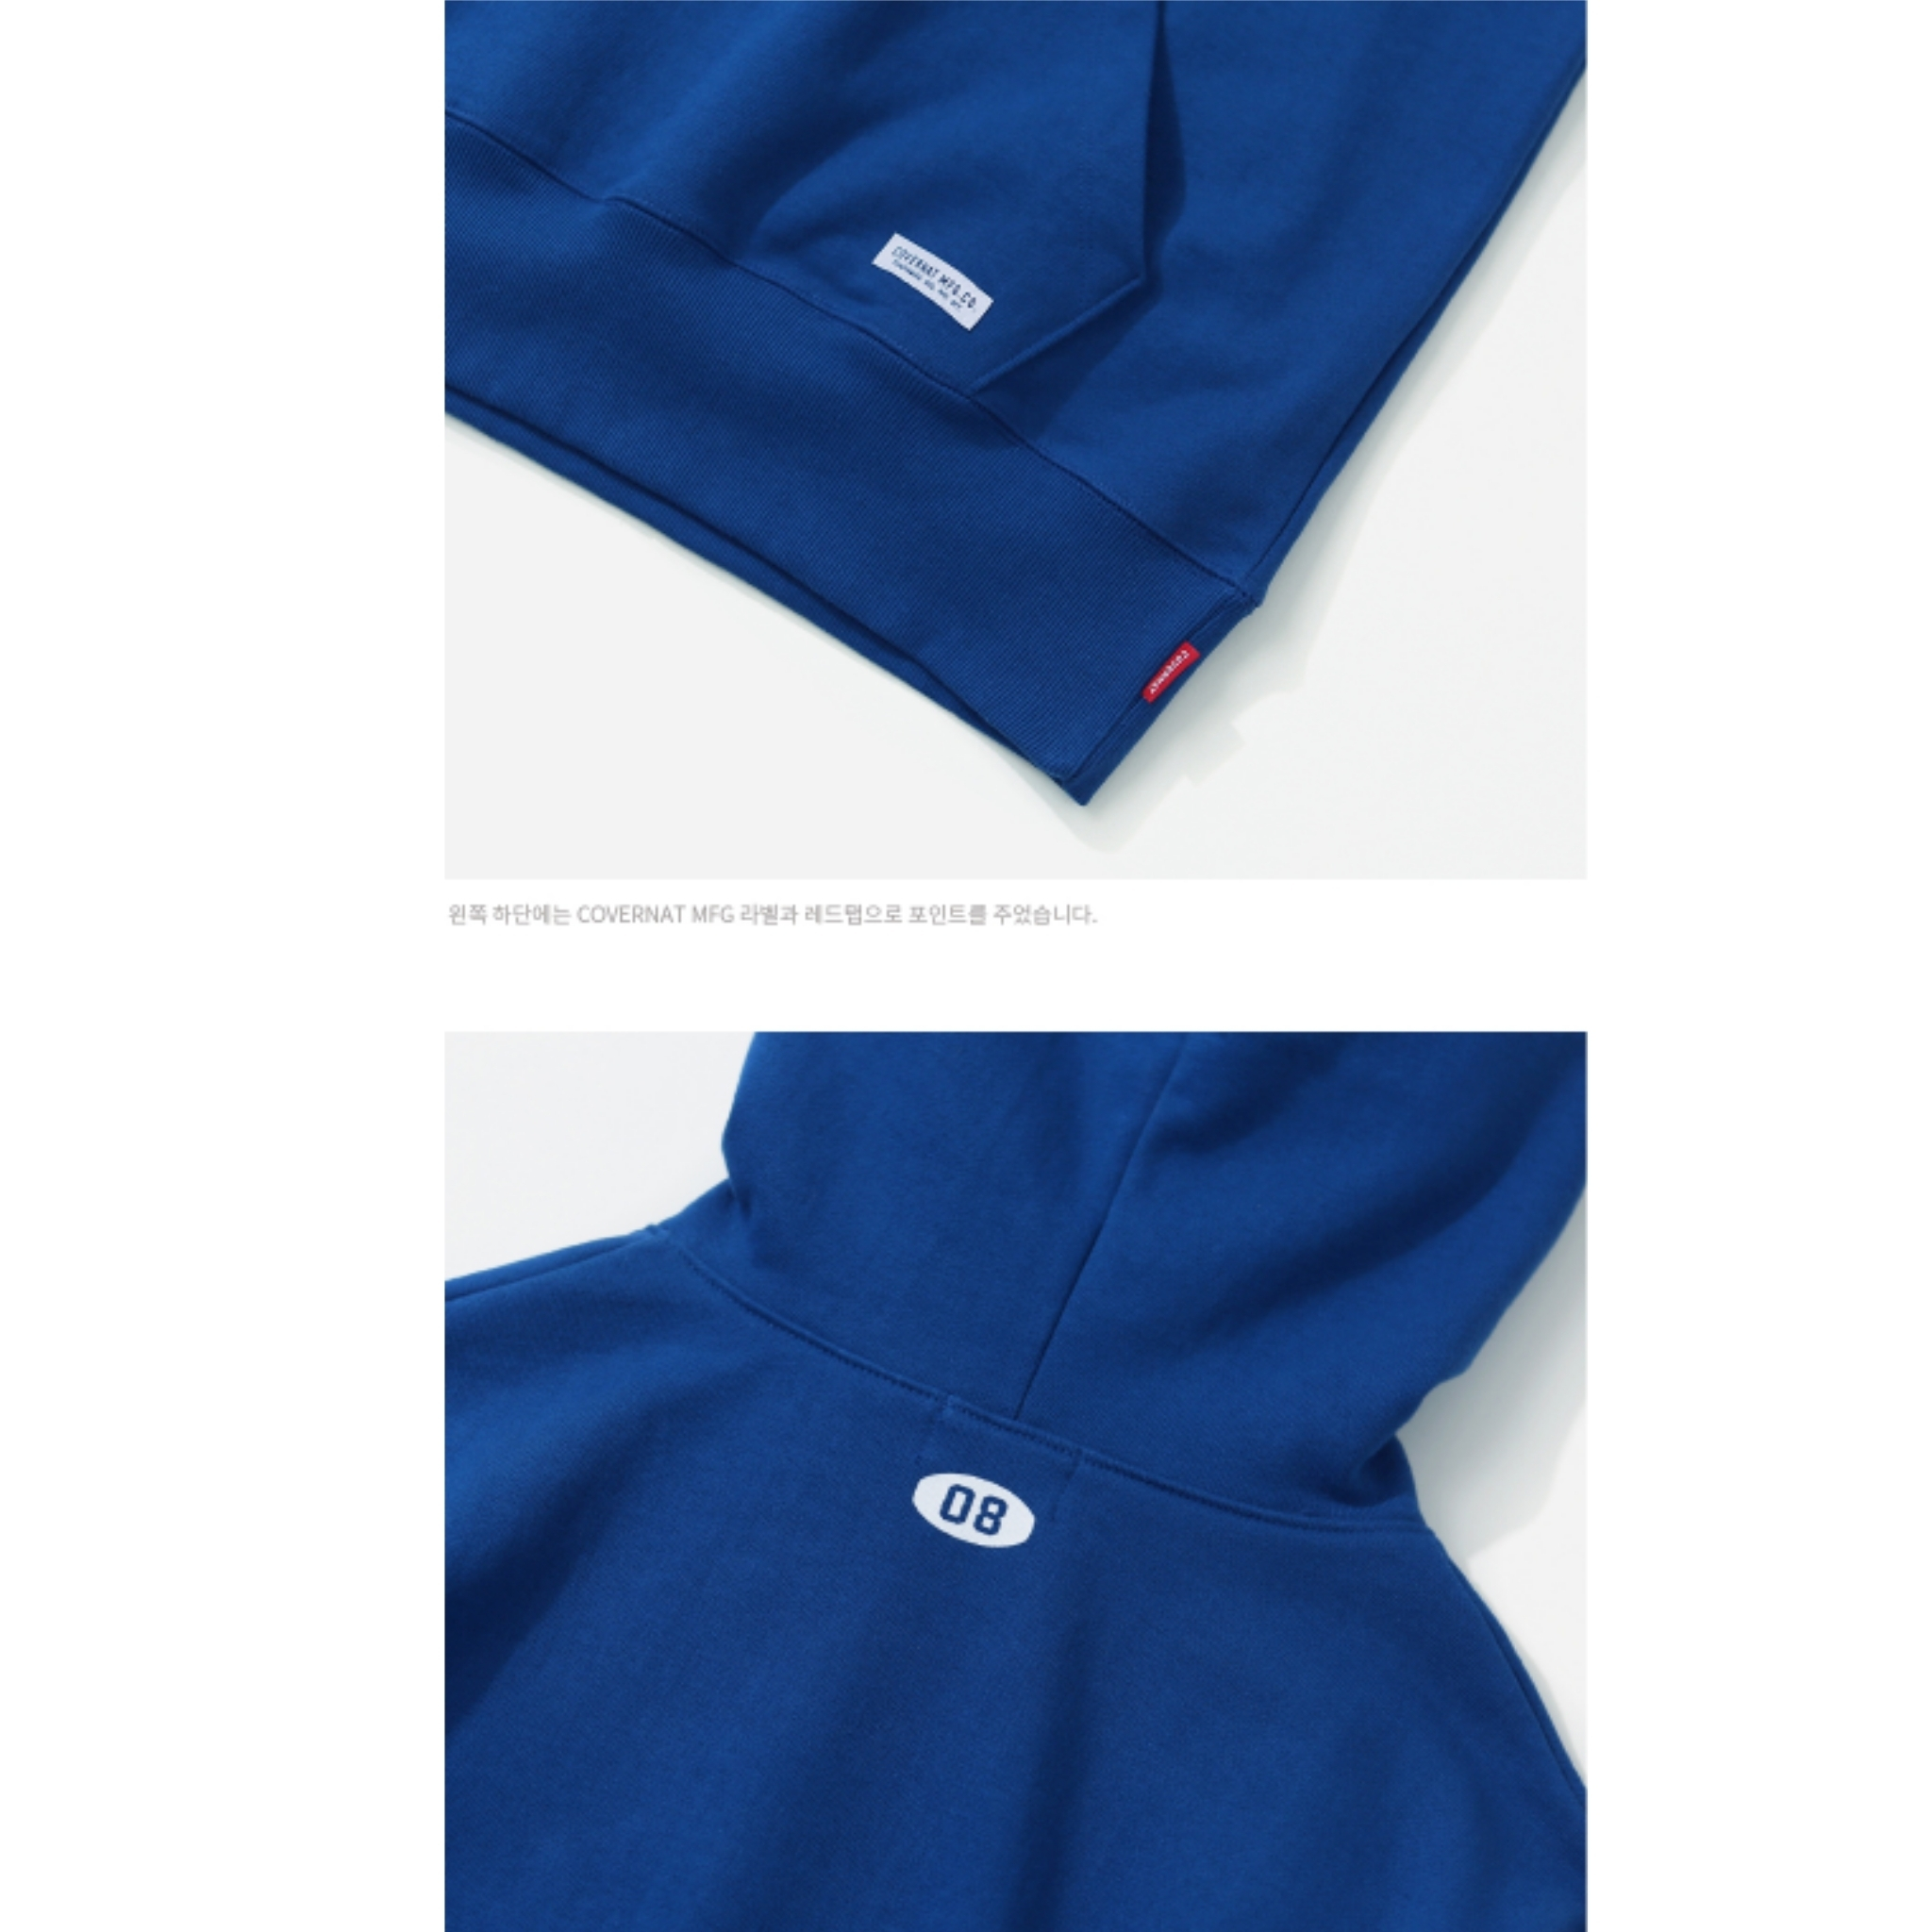 新作★COVERNAT★COLOR BLOCK ARCHLOGO HOODIE BLUE